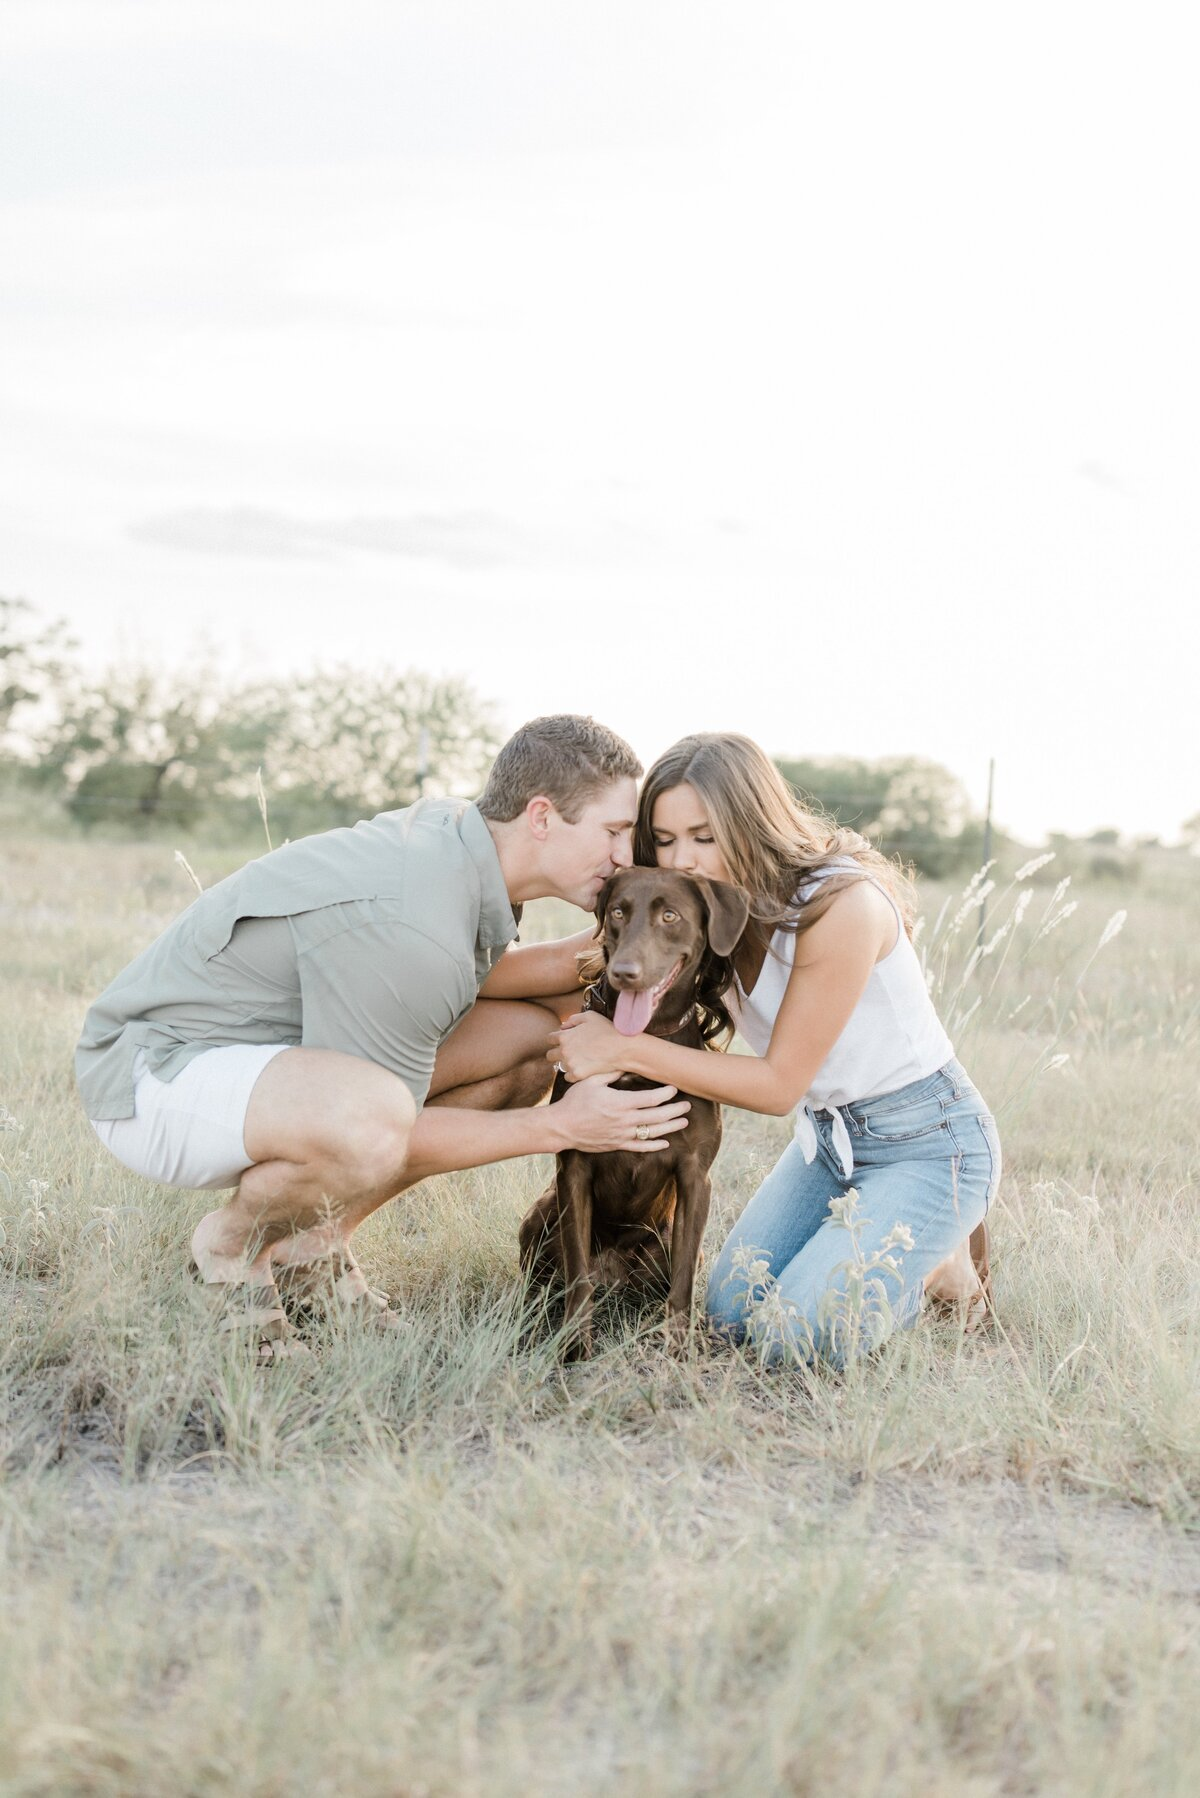 Oudoor Texas Engagement Session | Patti Darby Photography 22